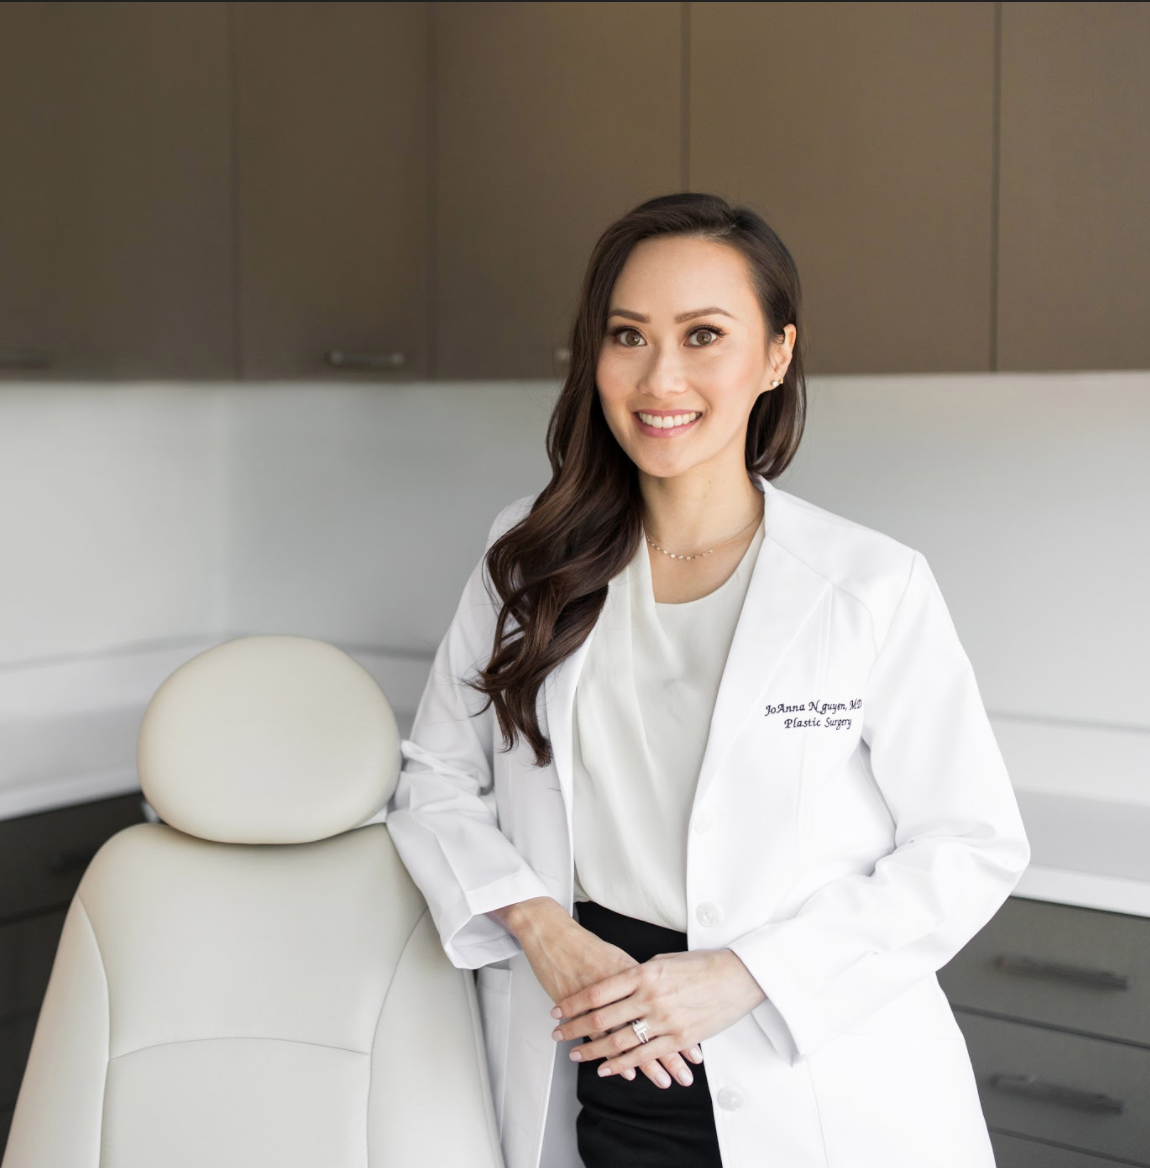 Dr-Joanna-Nguyen-Plastic-Surgeon-Beverly-Hills-Los-Angeles.png